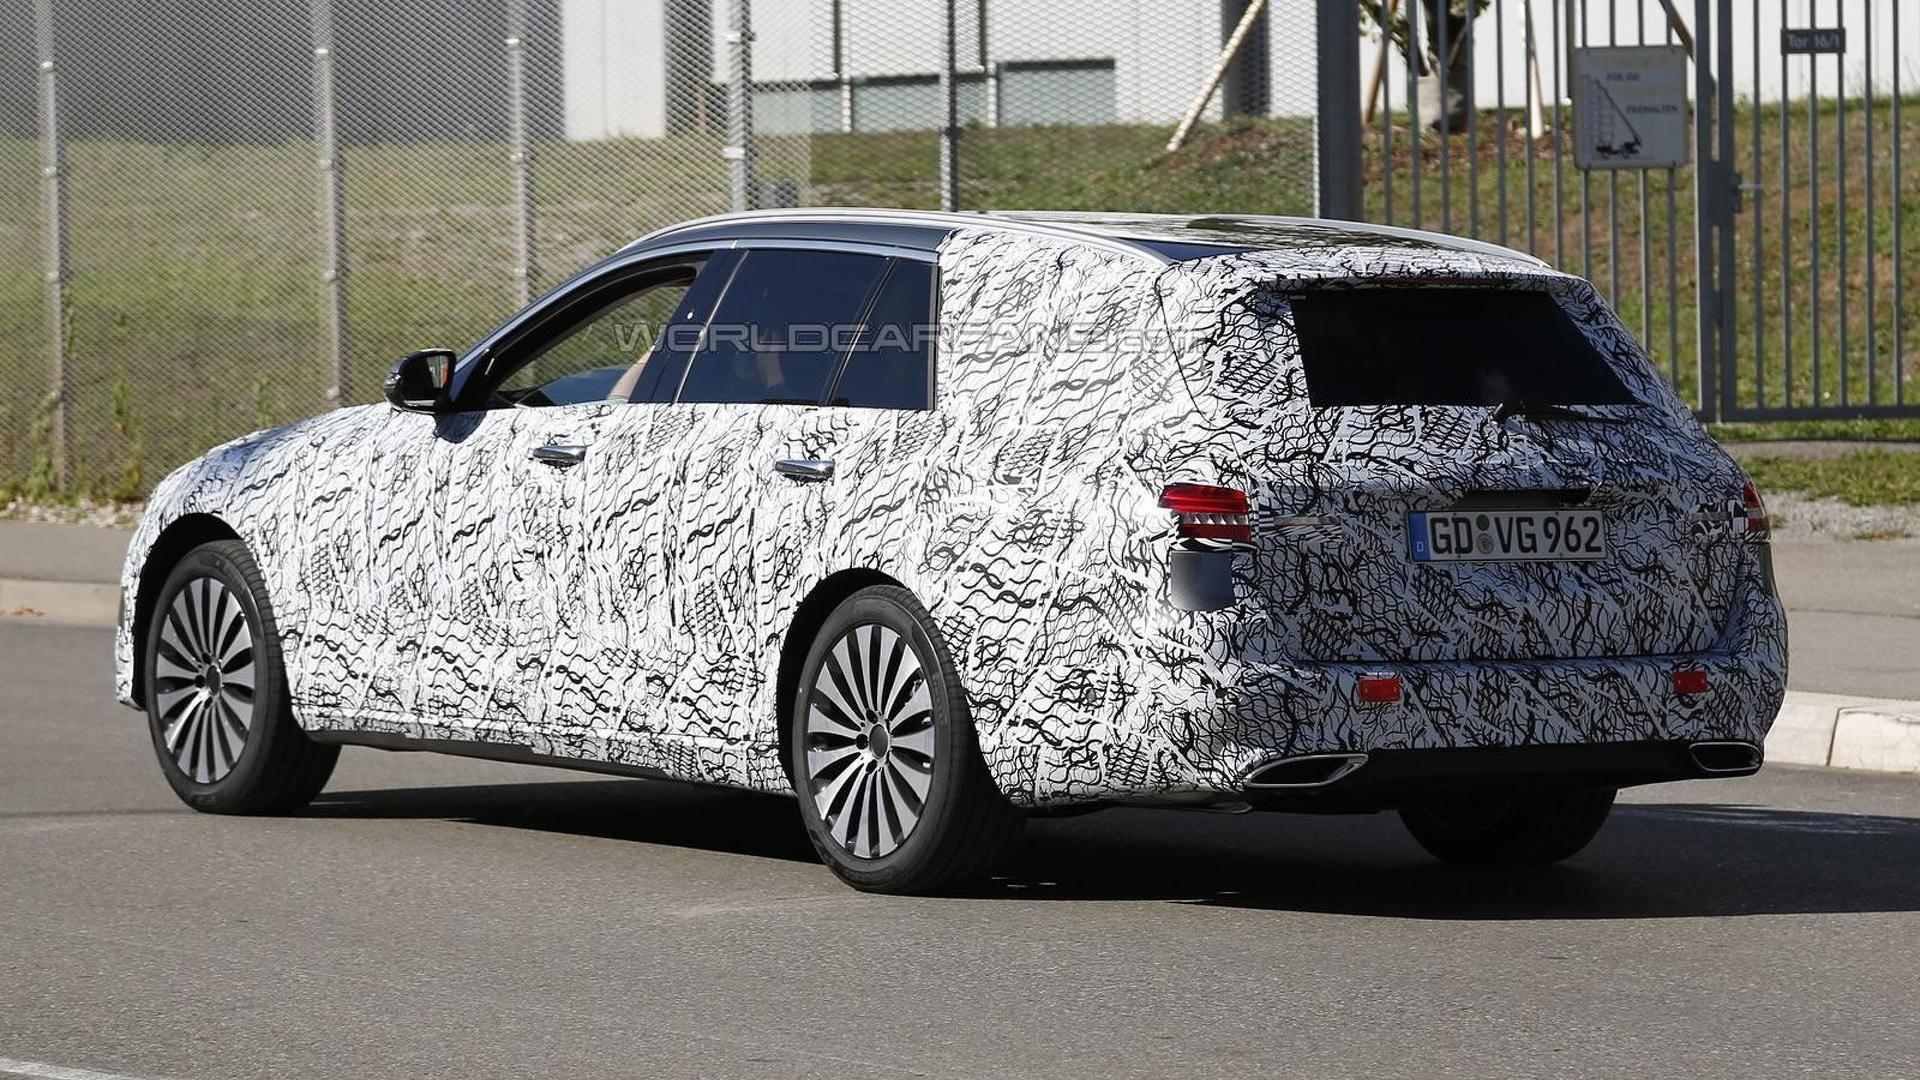 Next generation Mercedes-Benz E-Class keeps full body camo in latest spy shots